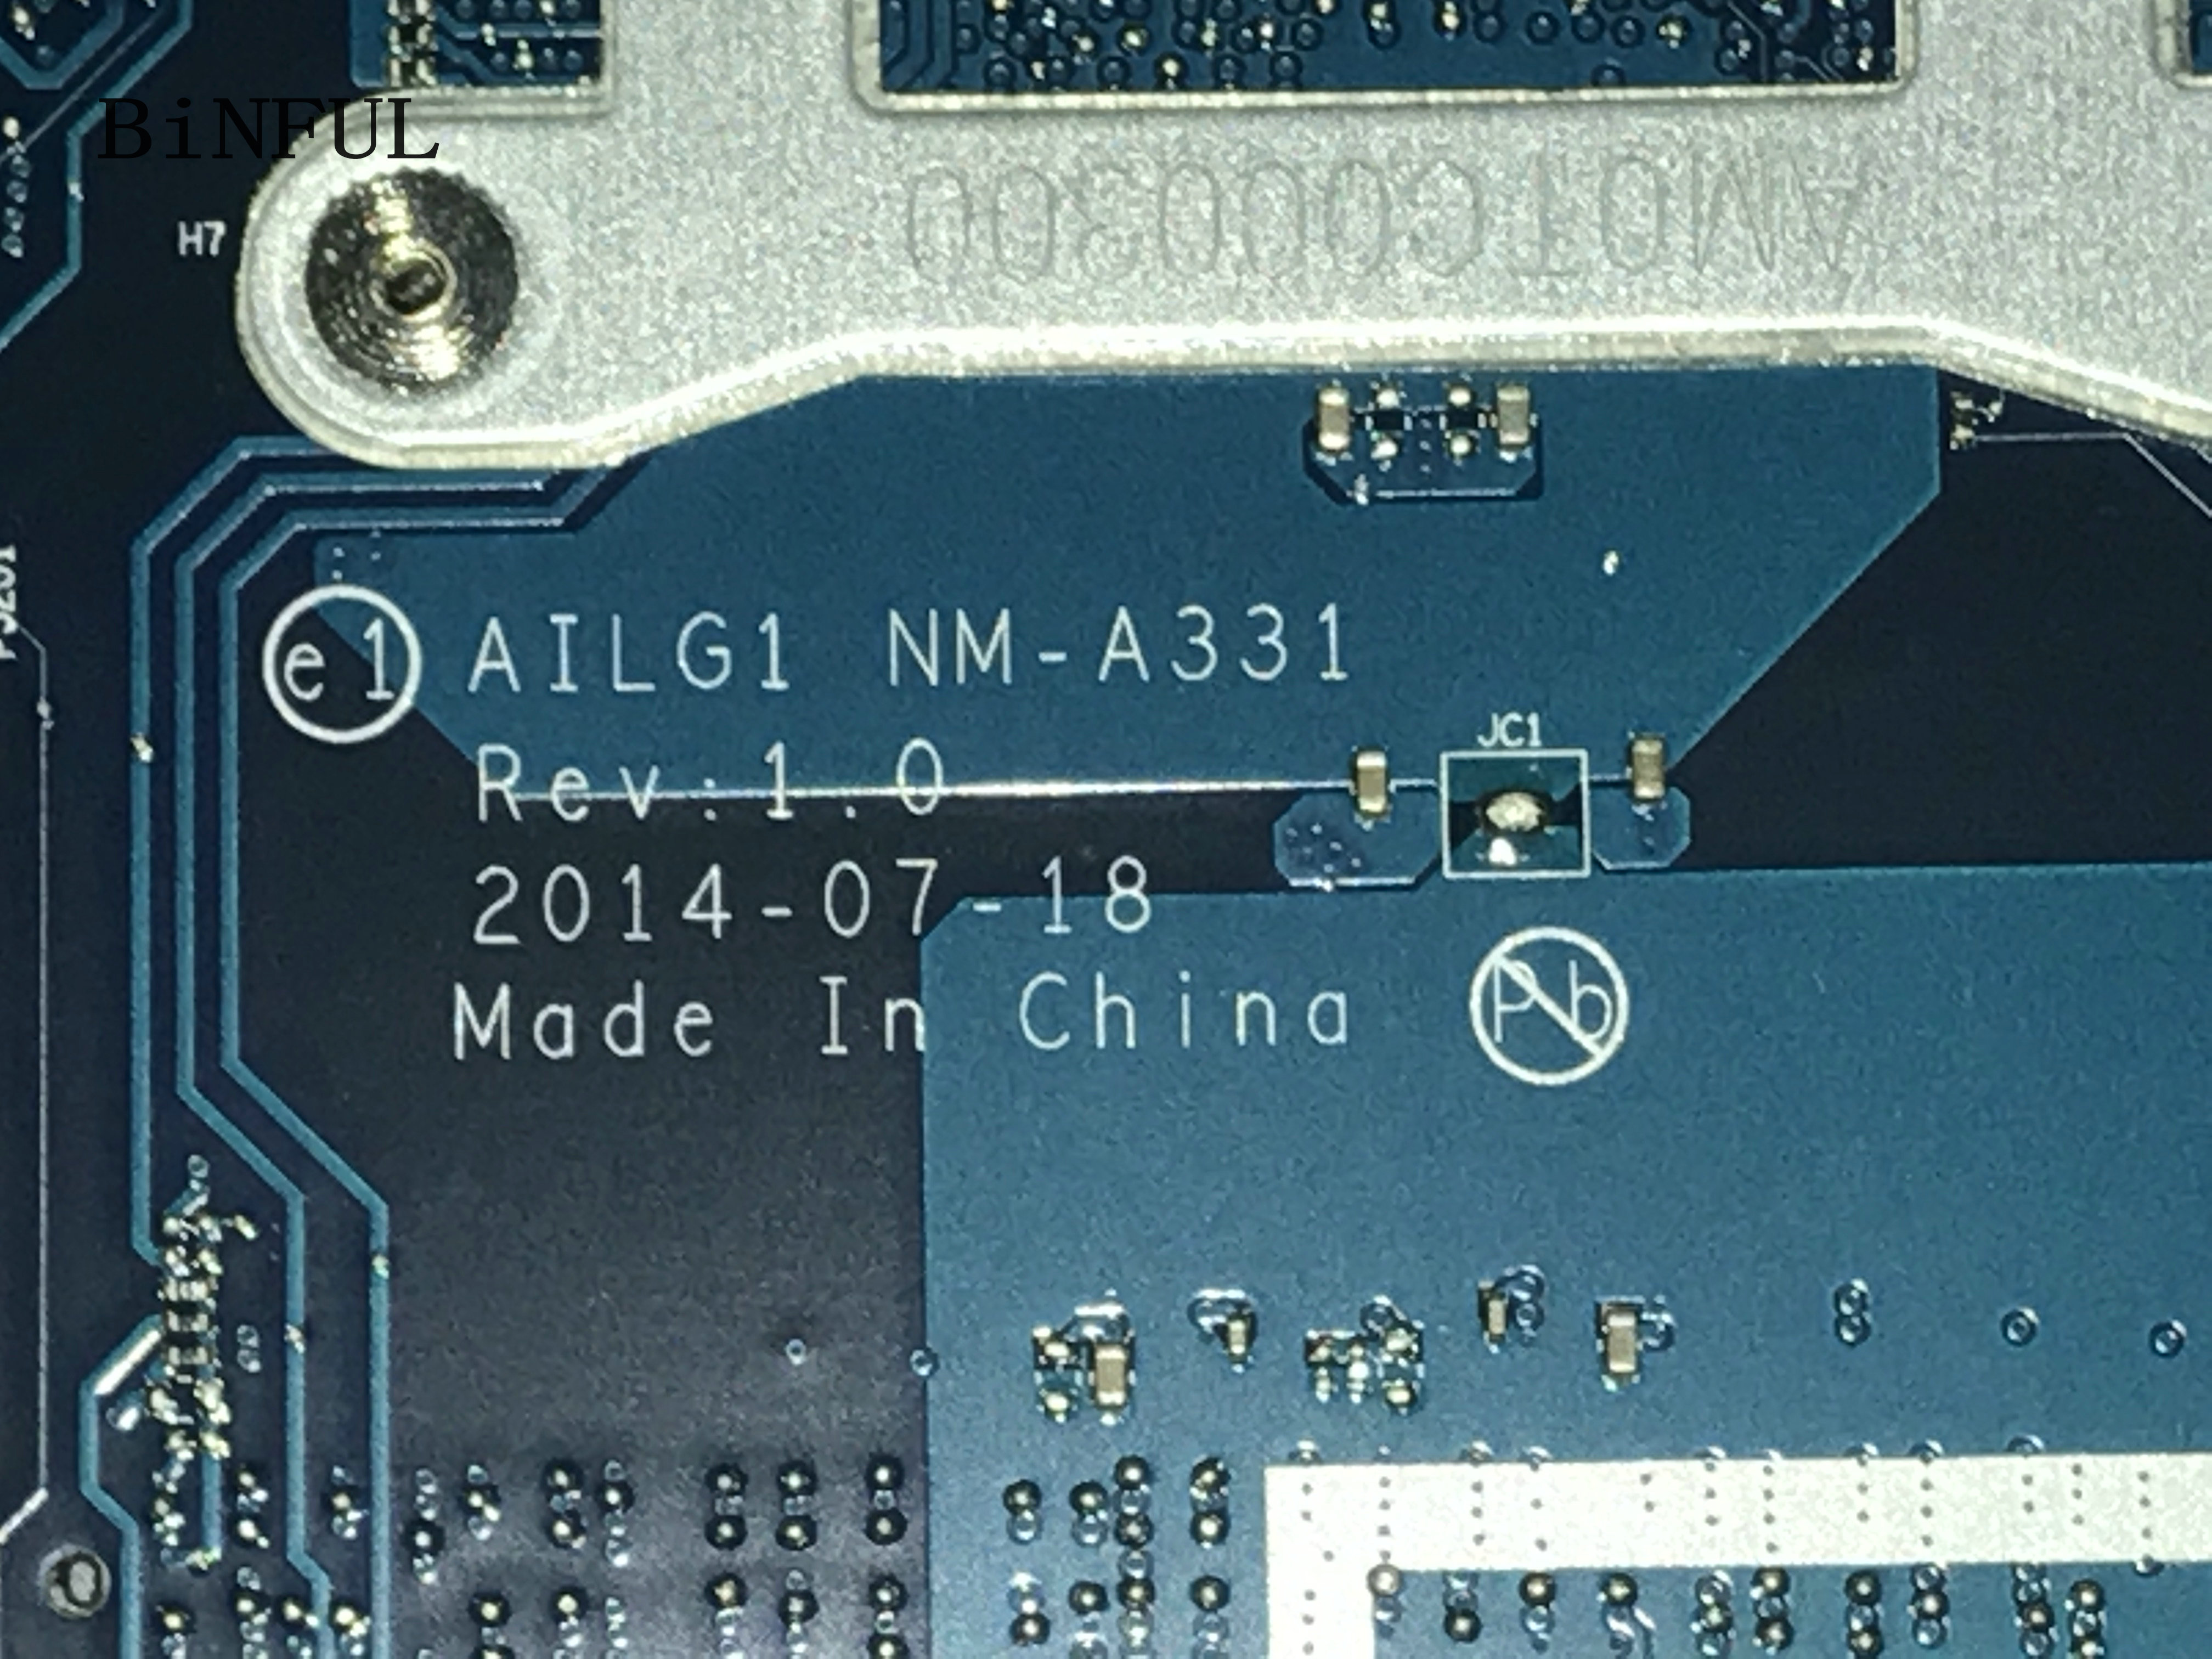 BiNFUL STOCK new item, AILG1 NM-A331 FOR <font><b>LENOVO</b></font> <font><b>G70</b></font>-80 / <font><b>G70</b></font>-<font><b>70</b></font> LAPTOP MOTHERBOARD ,onboard celeron processor,(qualified ok) image